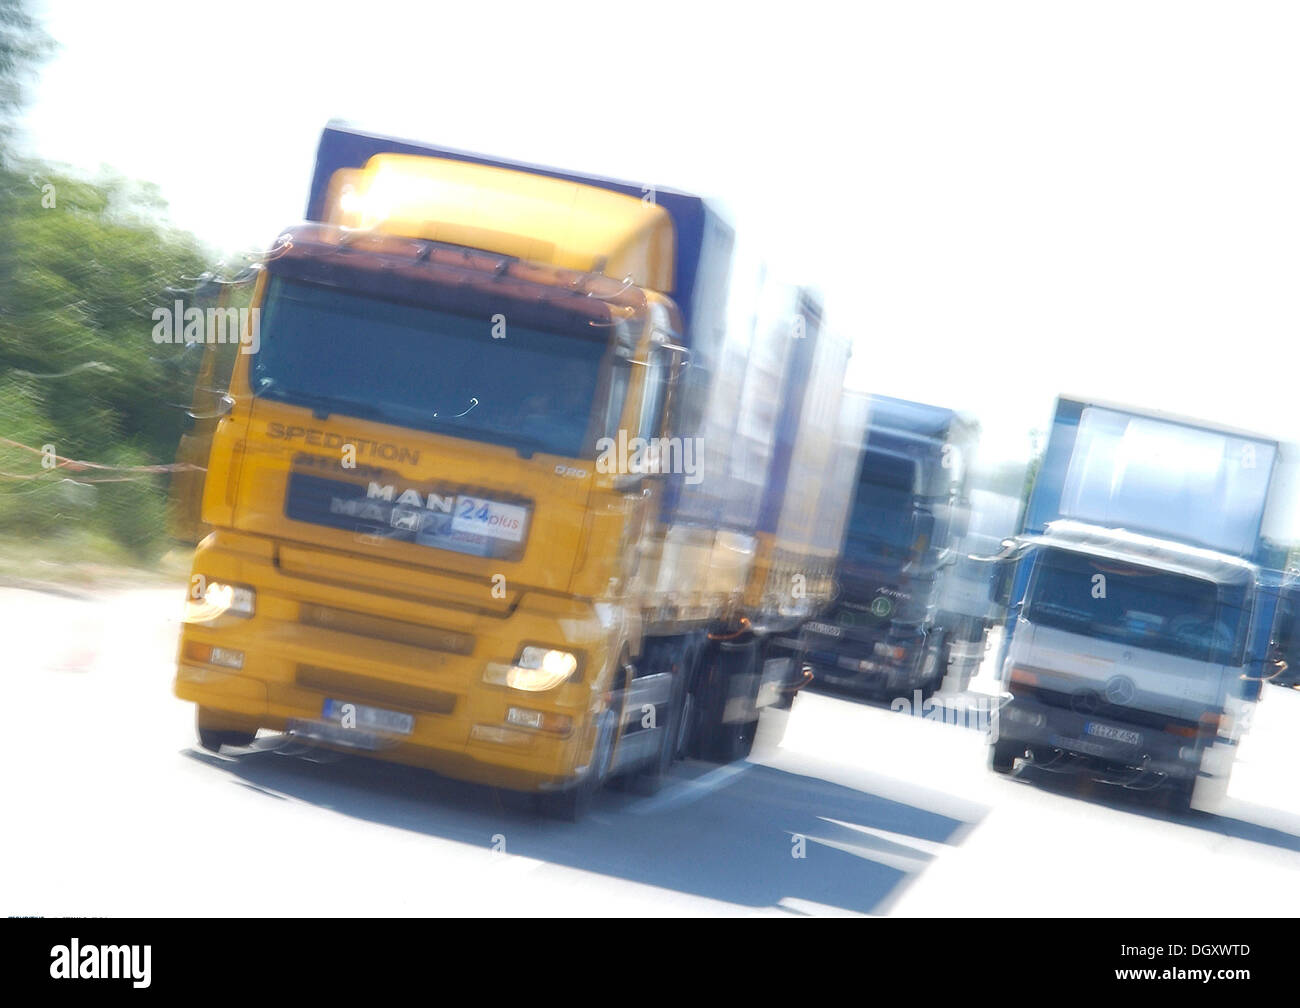 Trucks with motion blur on a road - Stock Image